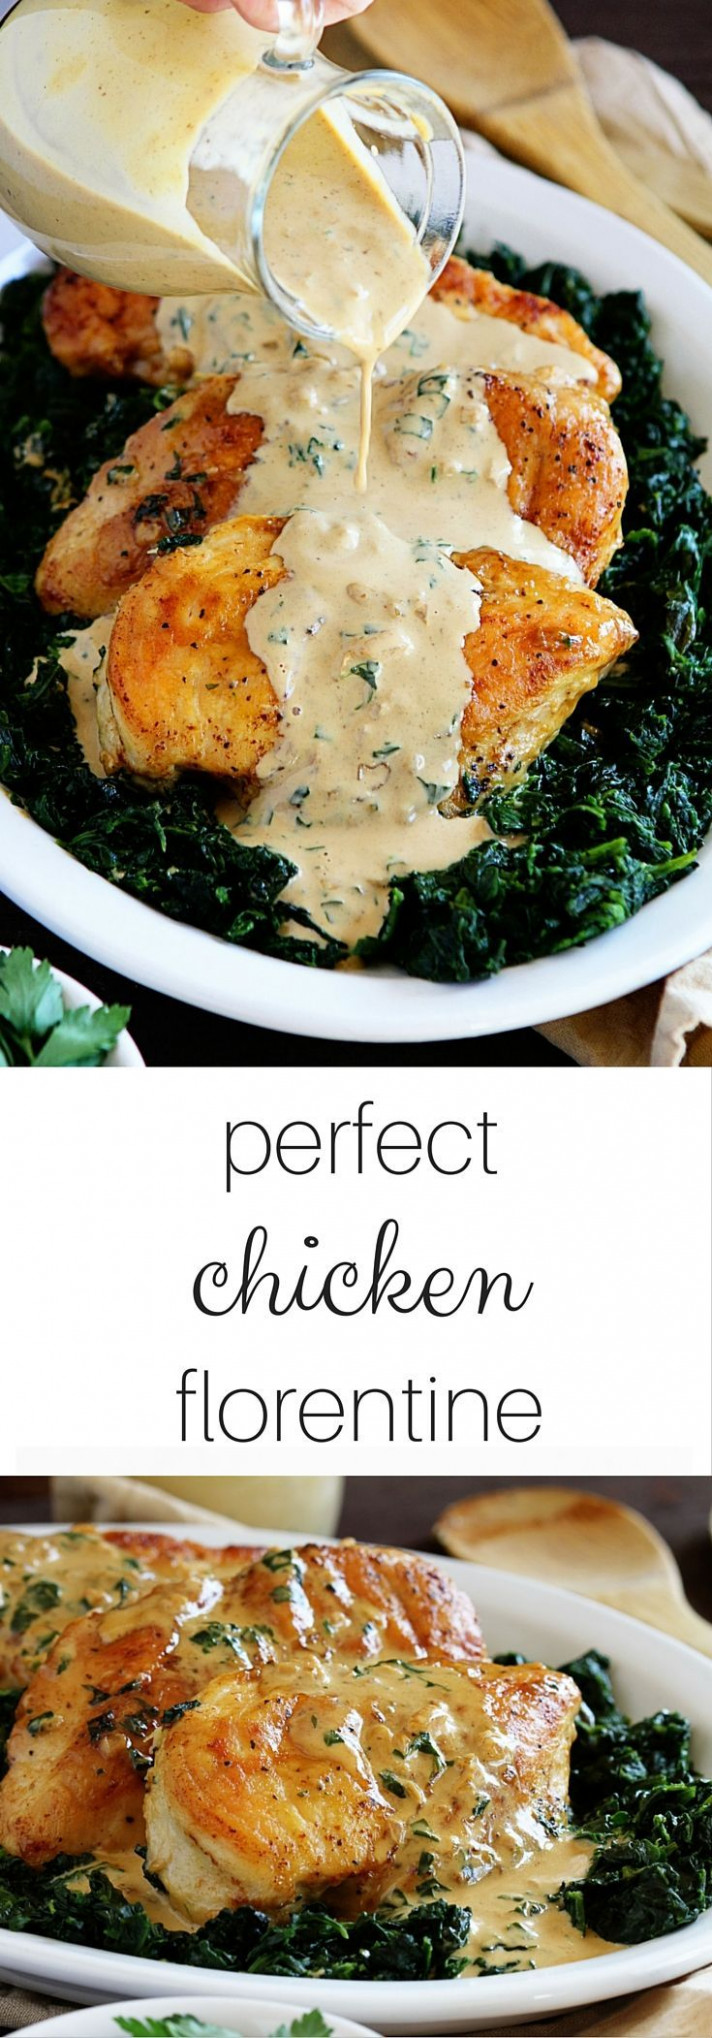 Best 20+ Chicken florentine ideas on Pinterest | Chicken ...